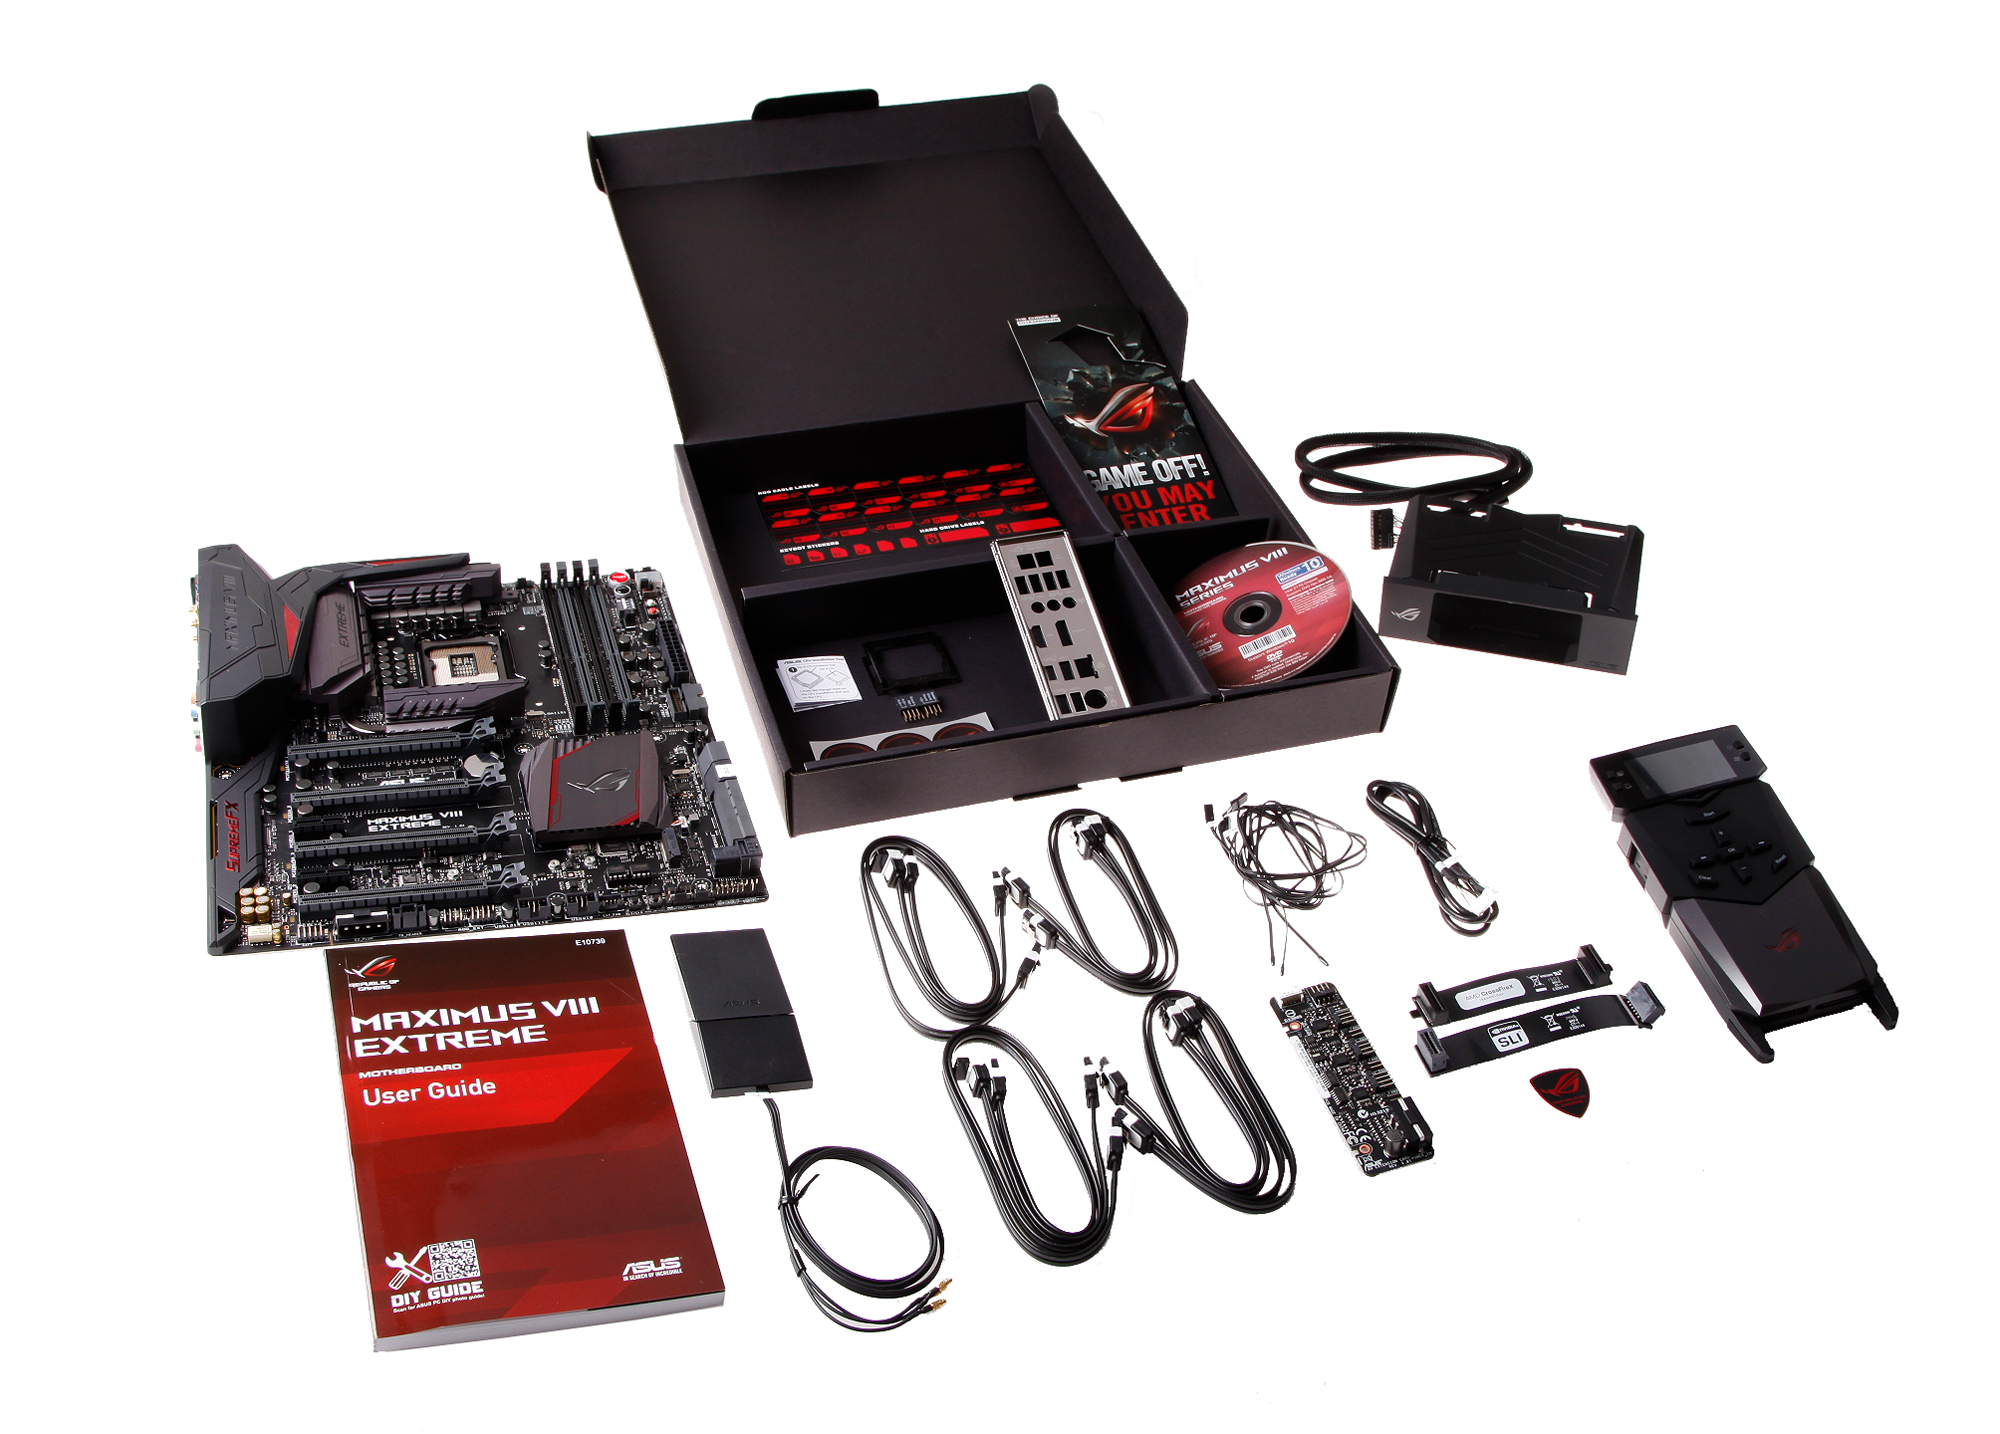 Unboxing Rog Maximus Viii Extreme Rog Republic Of